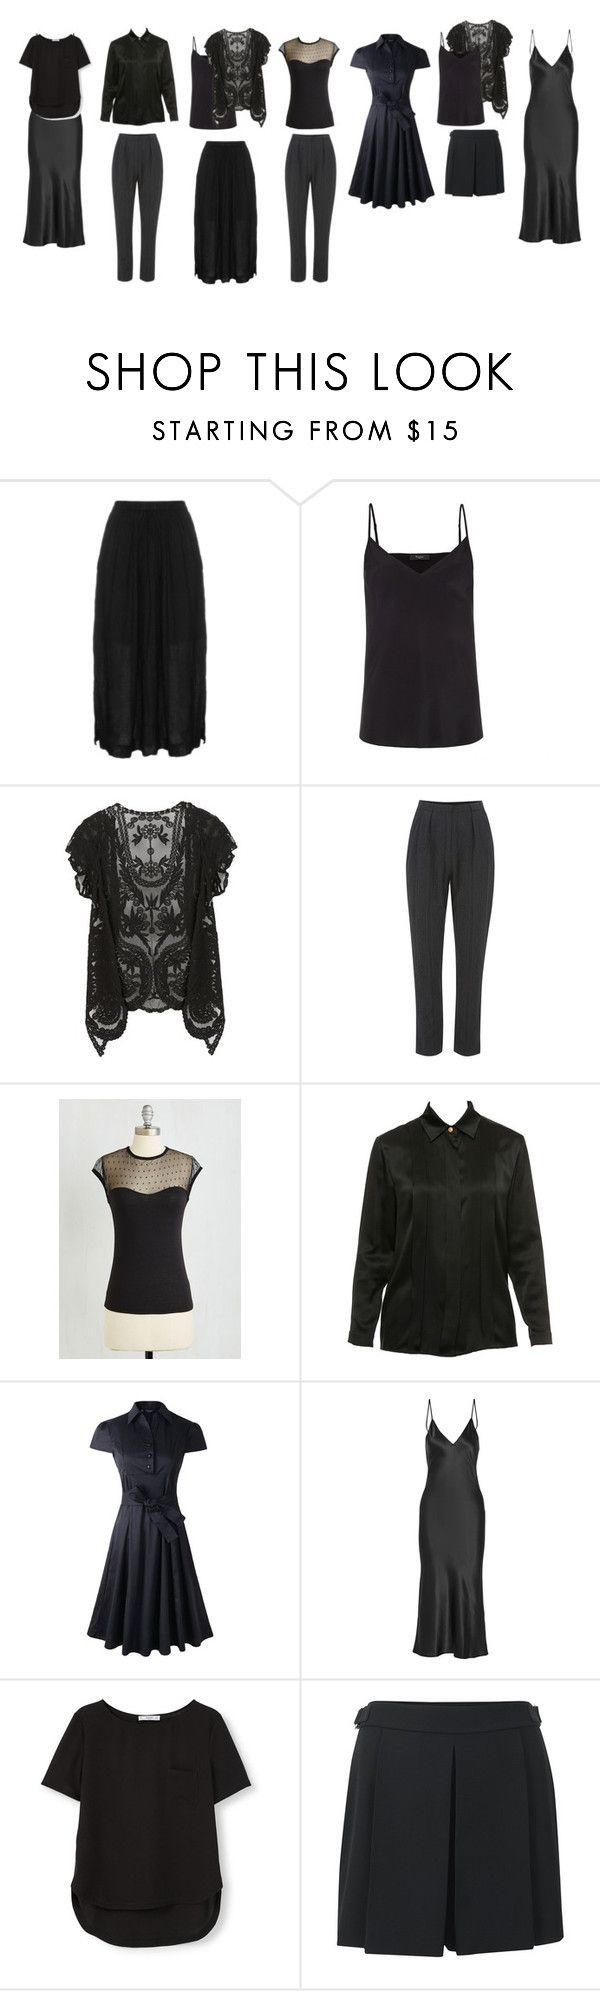 """""""summer capsule: black week"""" by rosyapple ❤ liked on Polyvore featuring GRIZAS, Paul Smith, Protagonist, MANGO, Alexander Wang, men's fashion и menswear"""